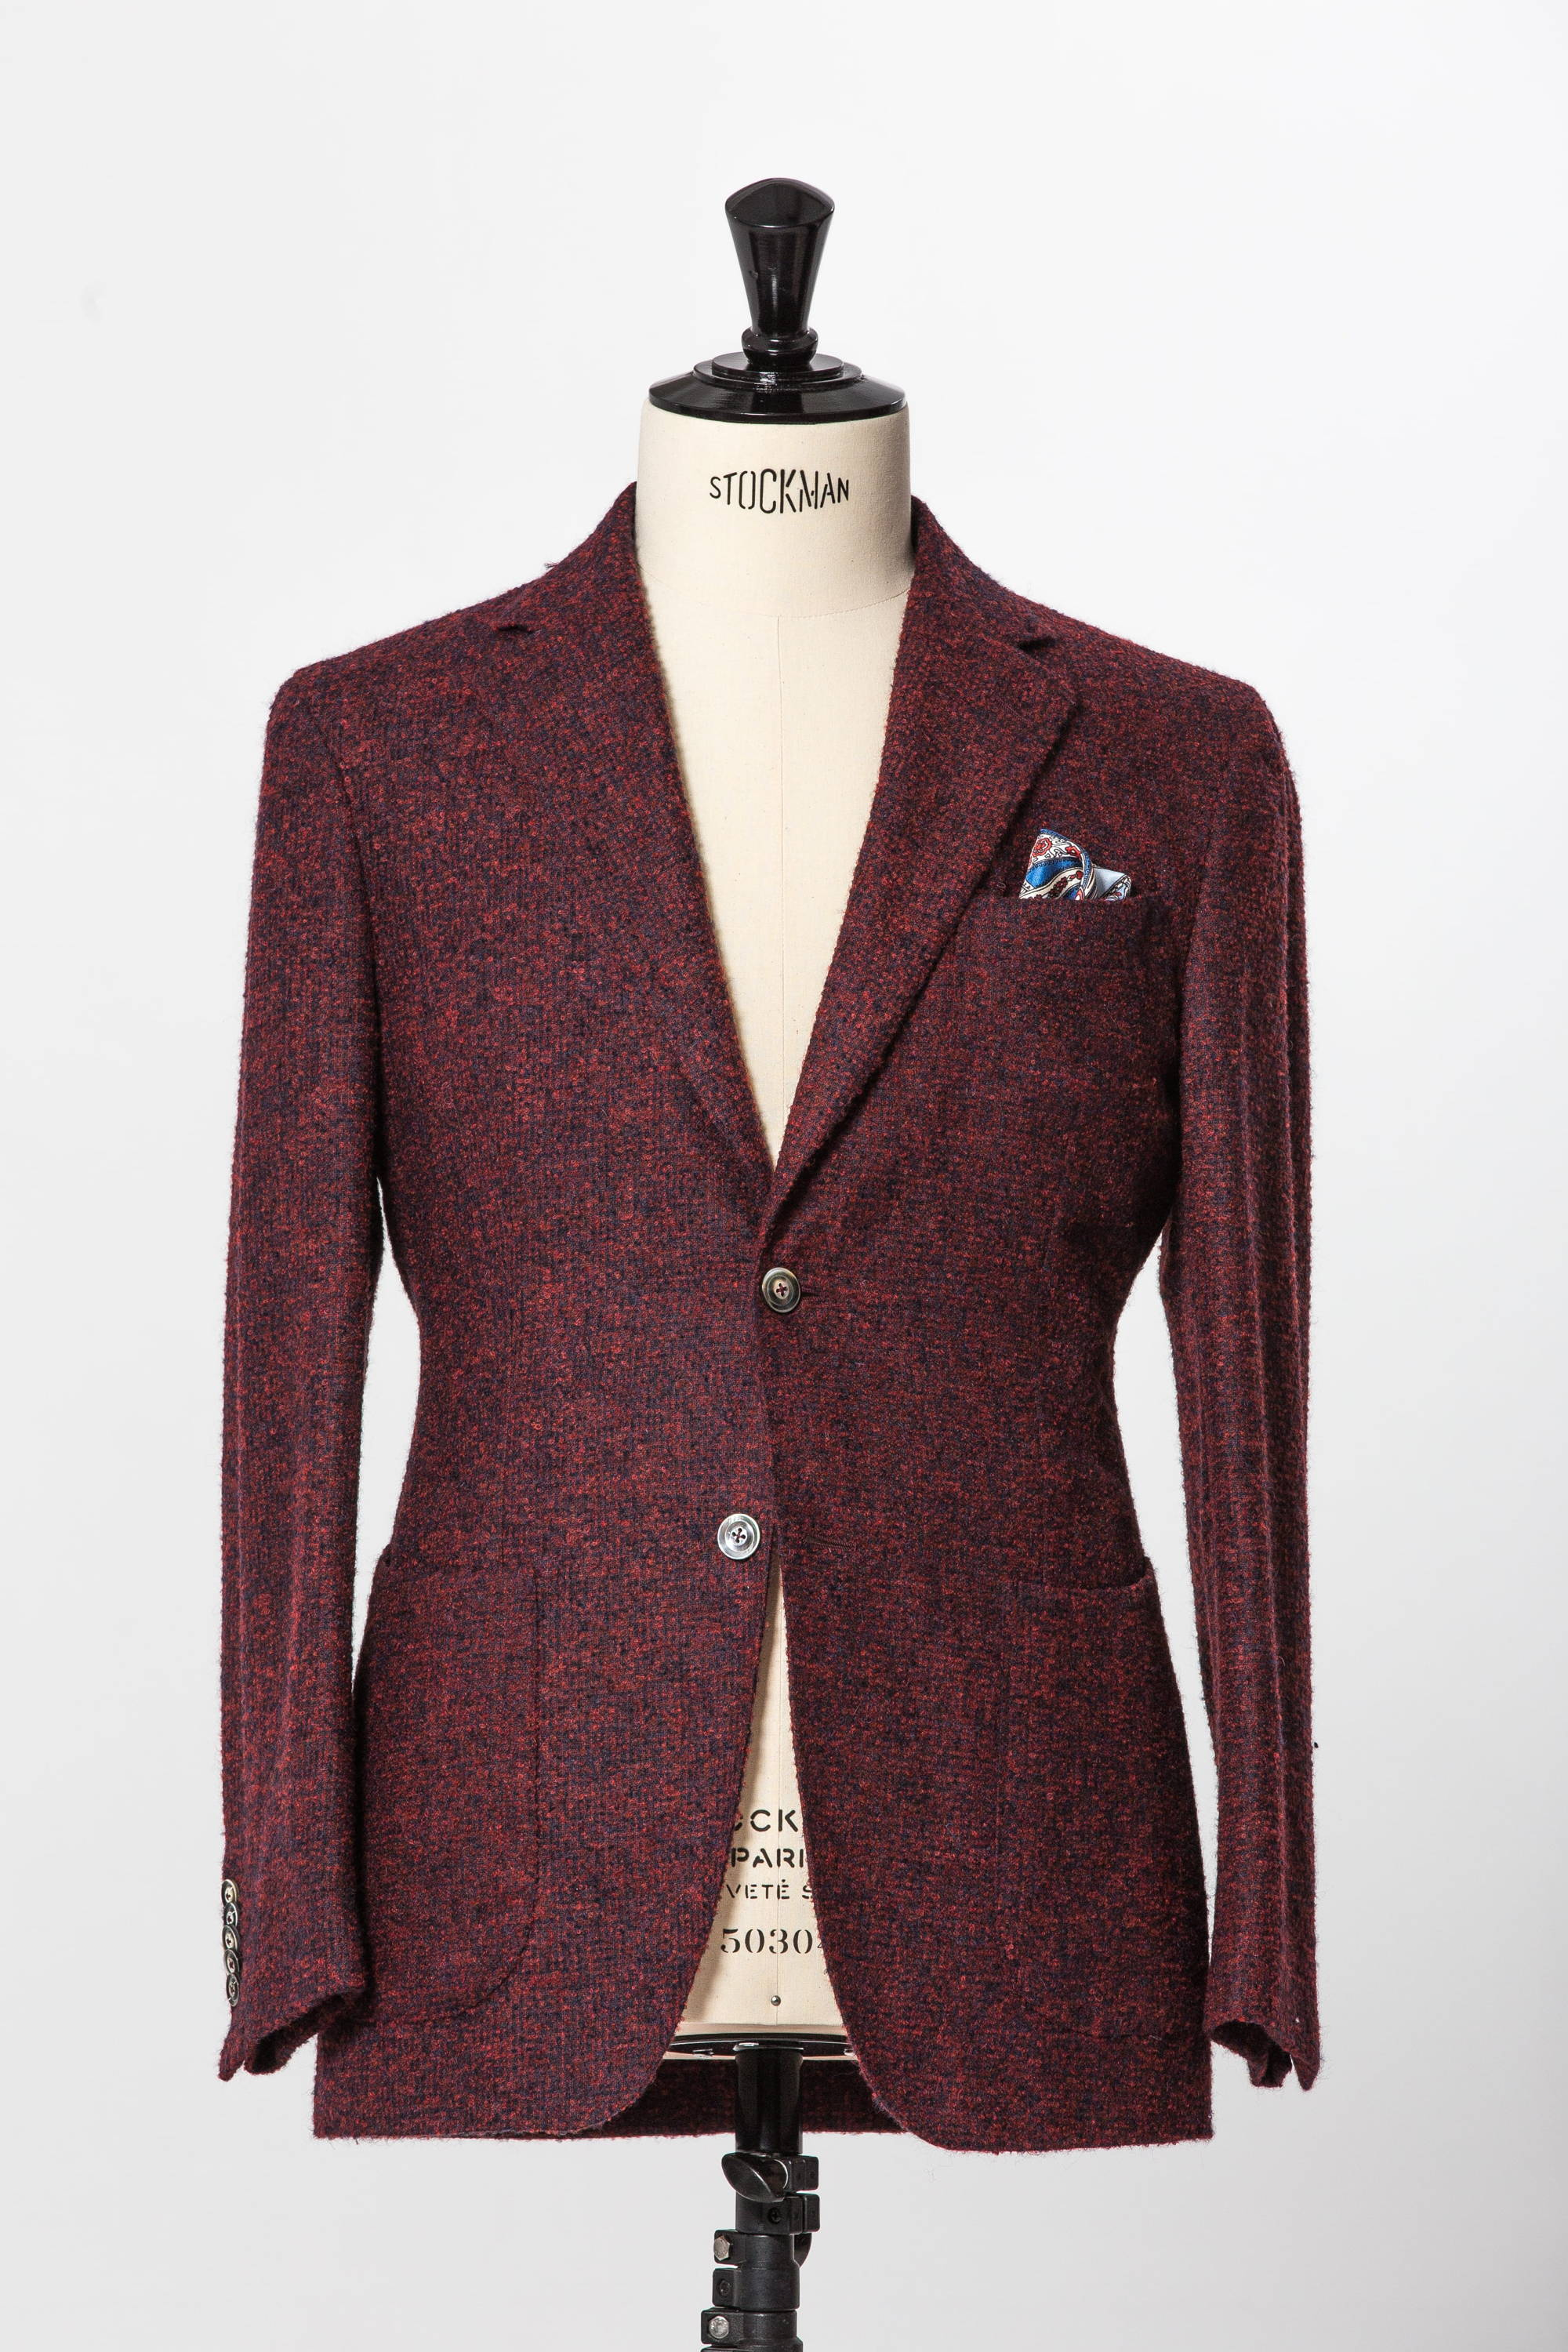 Red and navy mix unstructured summer suit jacket with paisley pocket square